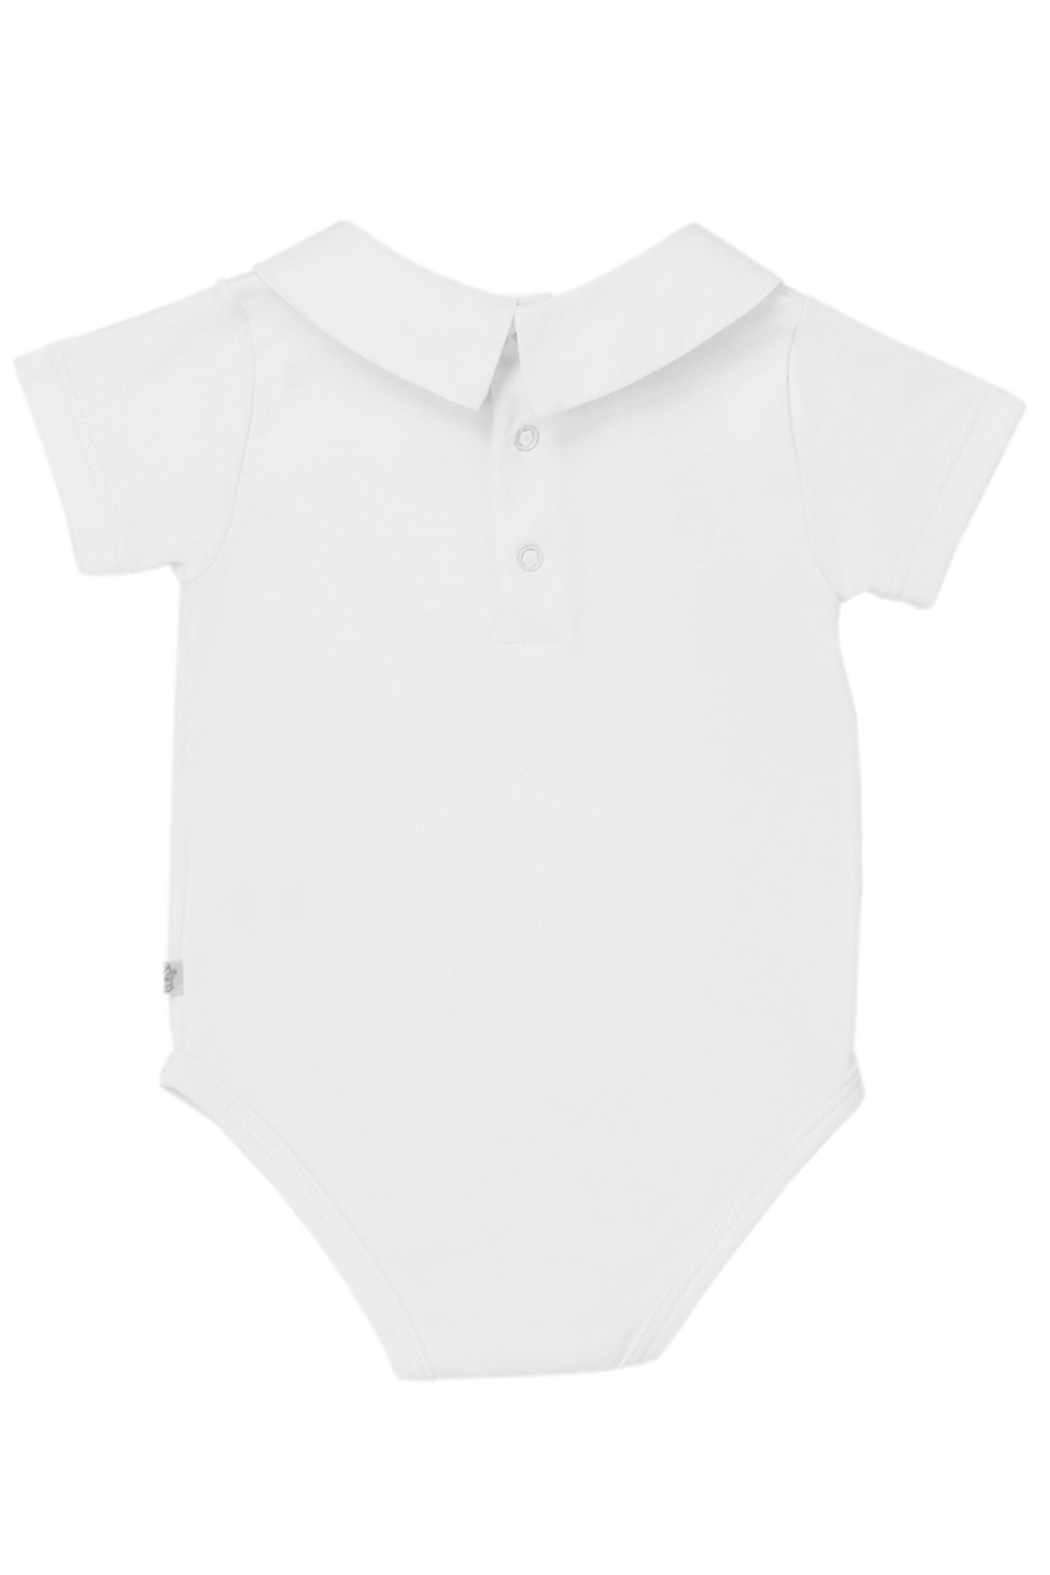 Marie Chantal Ethan Collar Onesie - Front Full Image